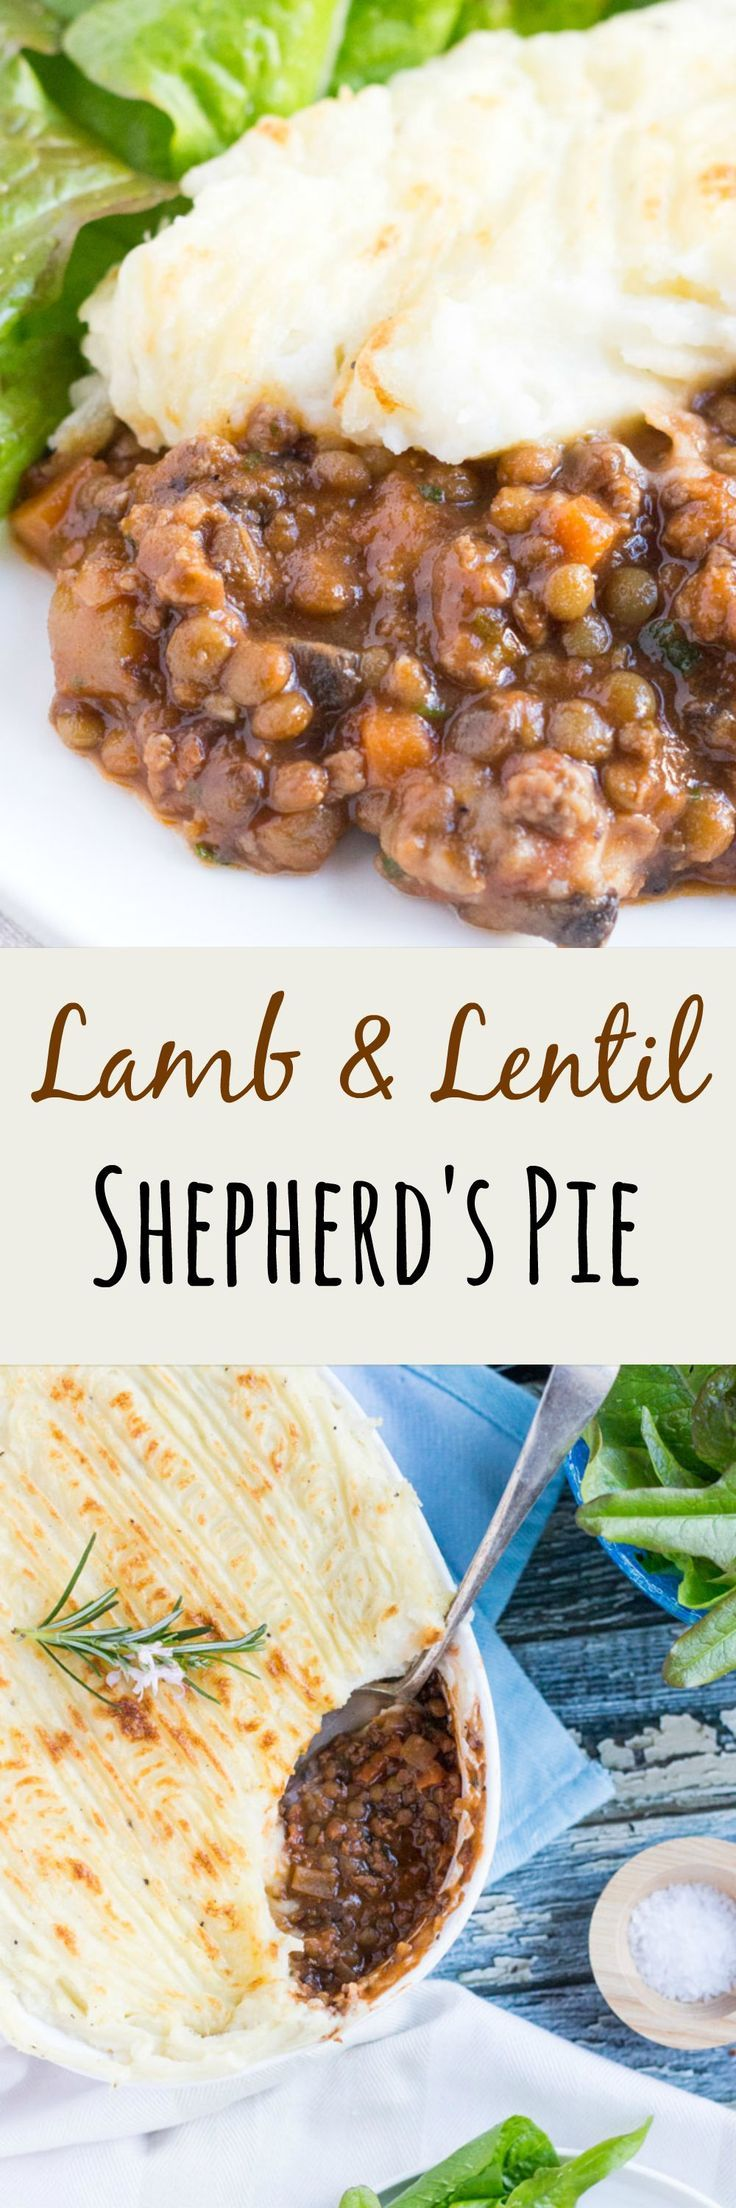 Lamb & Lentil Shepherd's Pie.  Loaded with vegetables and earthy lentils, making a little meat go a long way, this Shepherd's Pie freezes brilliantly.  Make one for now, freeze one for later.